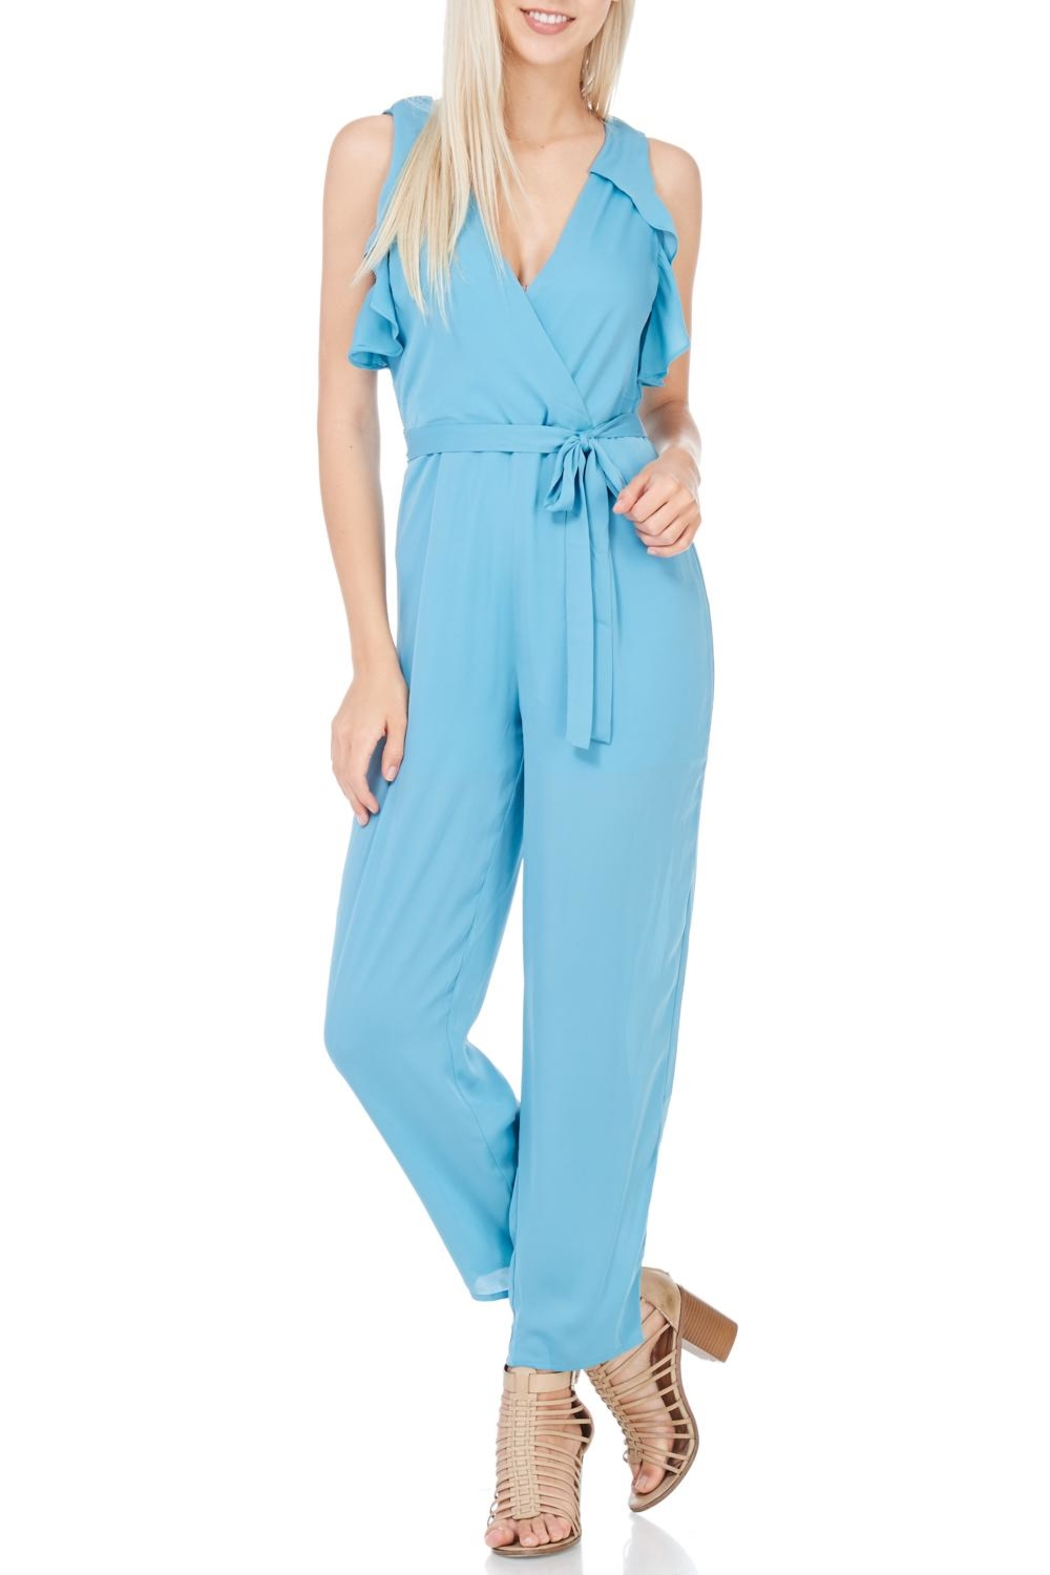 Everly Dusty Blue Lined Jumper - Main Image